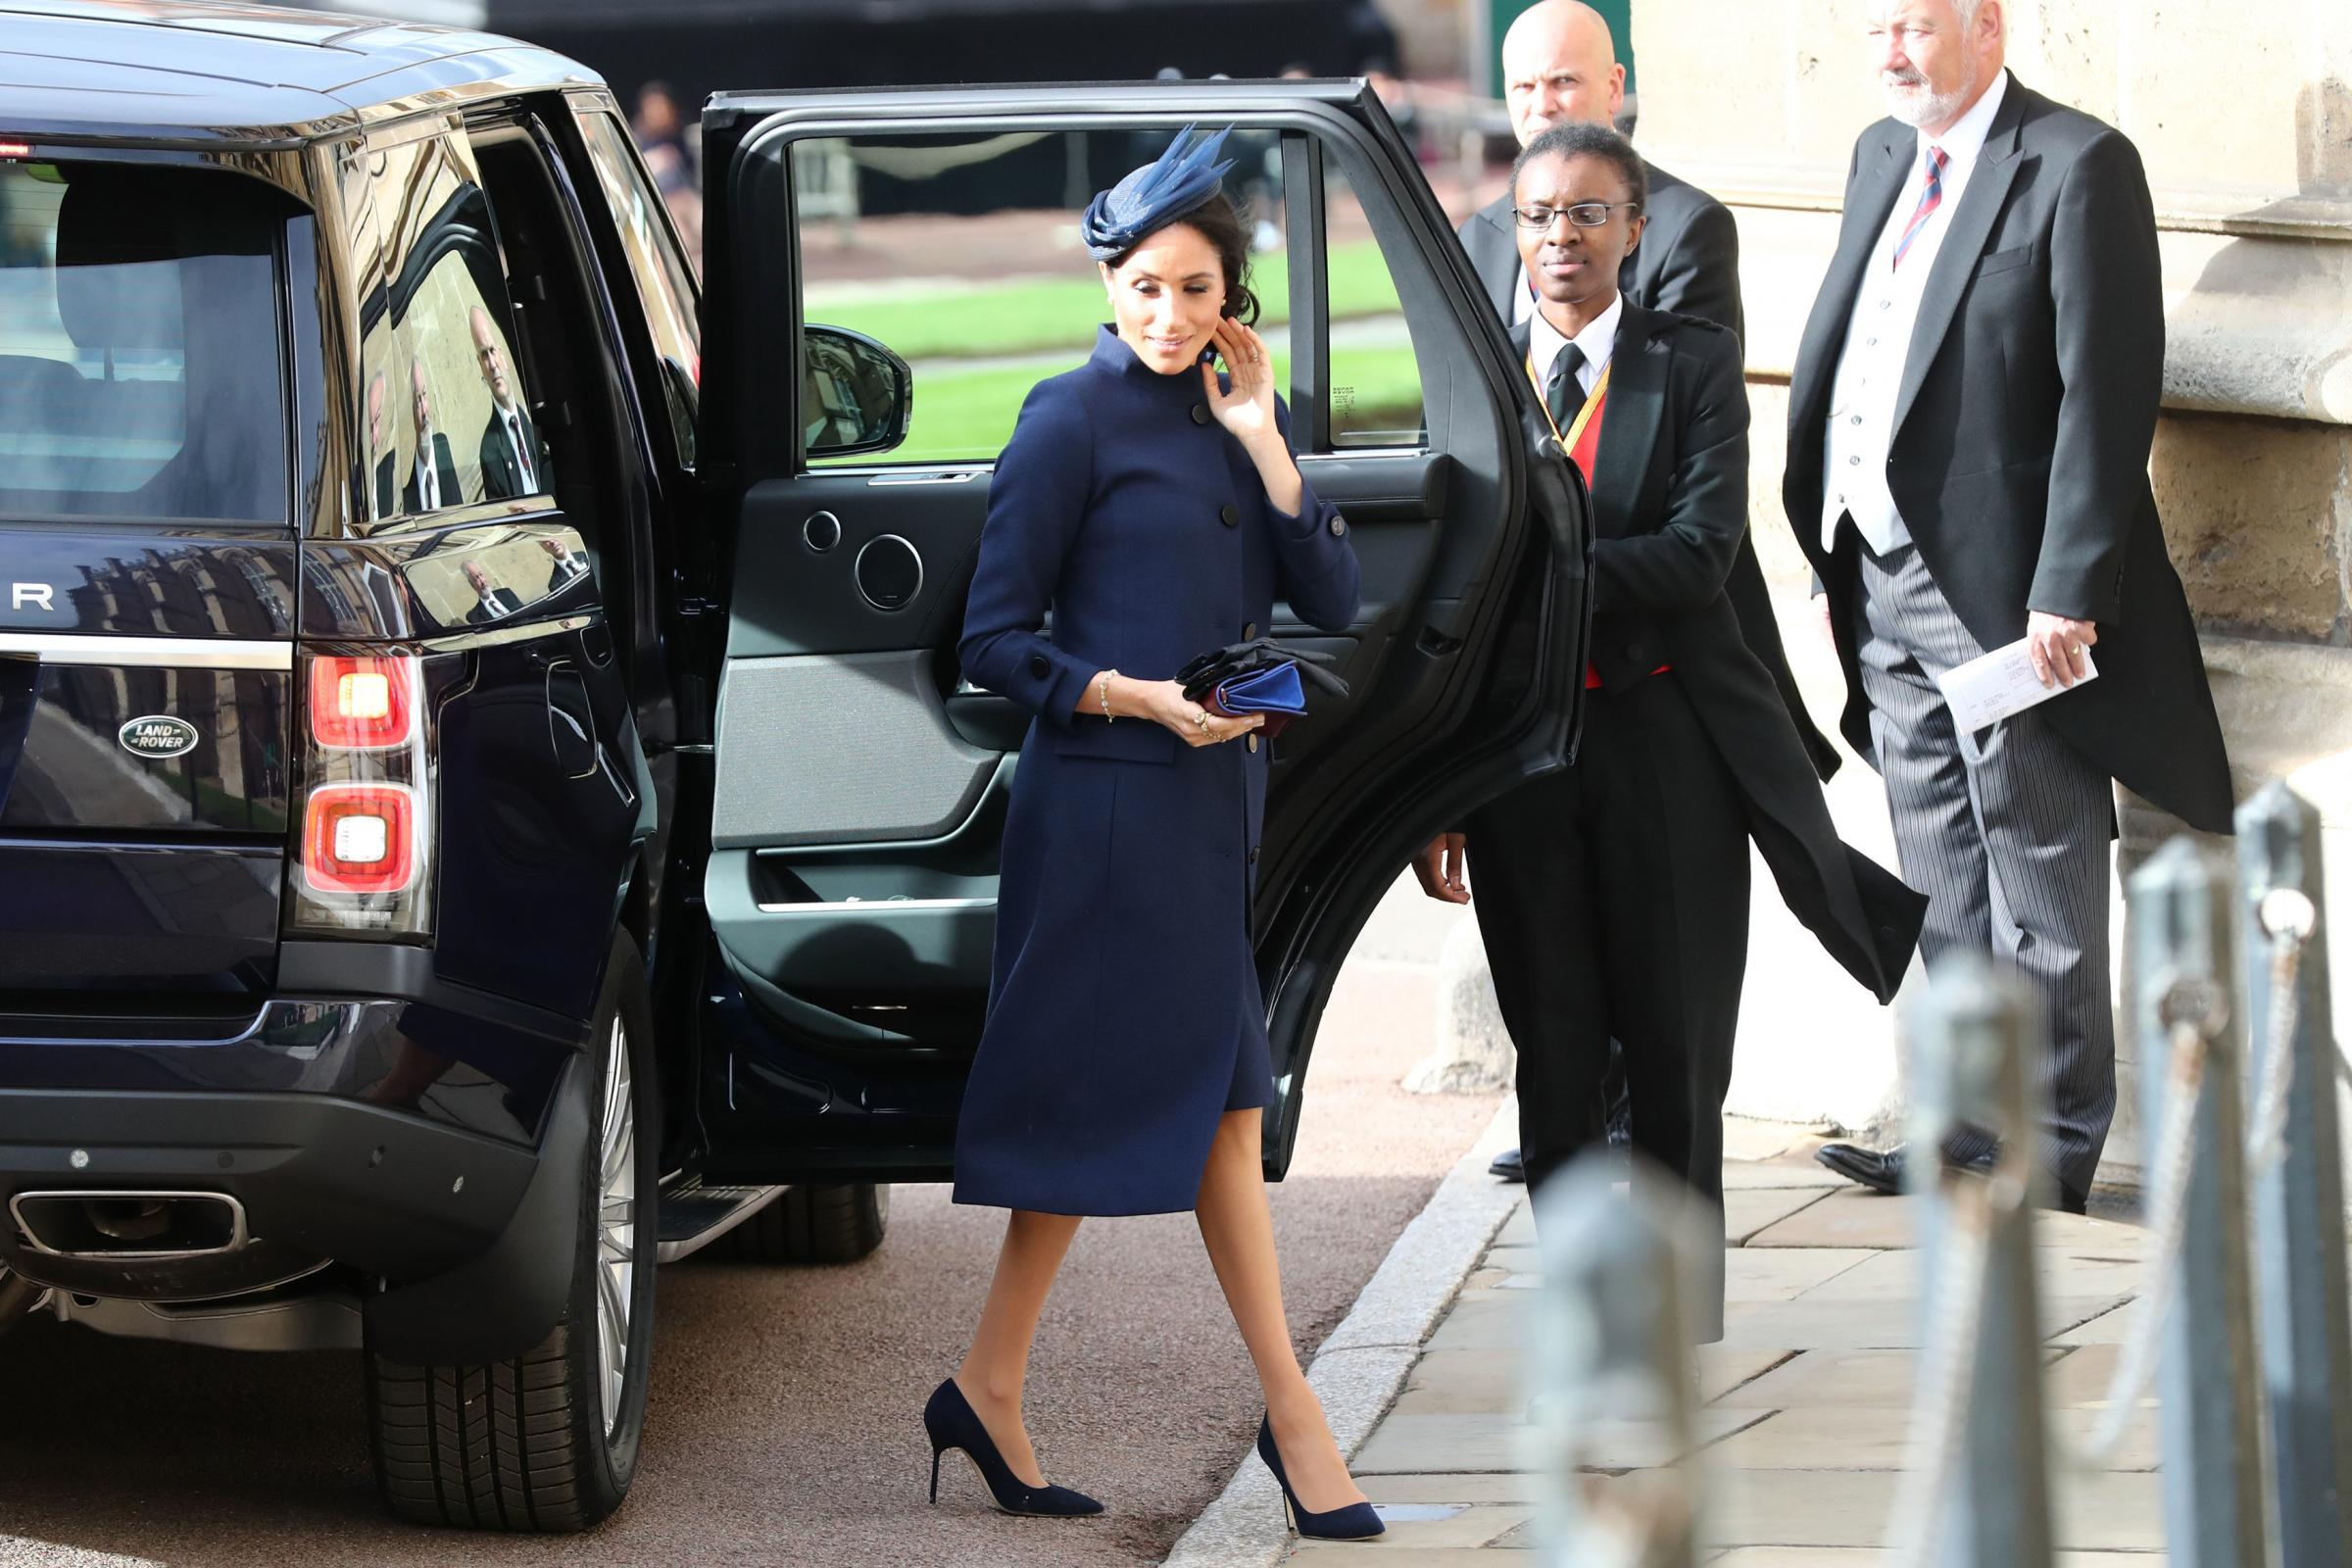 The Duchess of Sussex arrives ahead of the wedding of Princess Eugenie to Jack Brooksbank at St George's Chapel in Windsor Castle. PRESS ASSOCIATION Photo. Picture date: Friday October 12, 2018. See PA story ROYAL Wedding. Photo credit